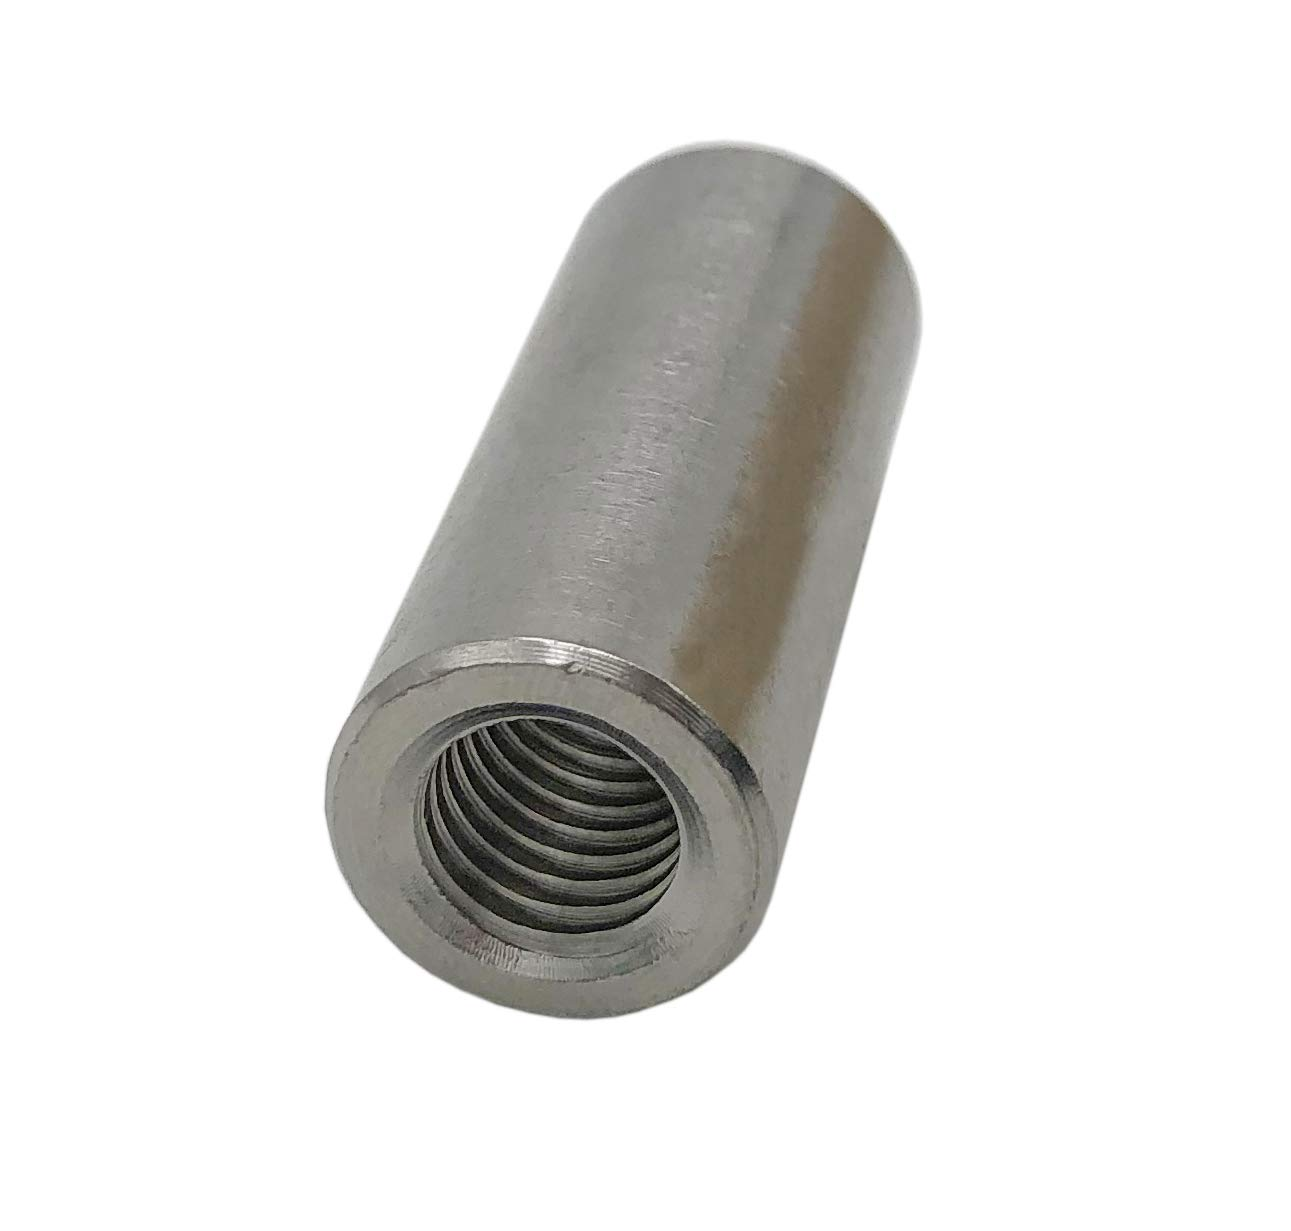 M10 X 40 304 Stainless Steel 5 Pack Round Coupling Connector Nuts Threaded Rose Joint Adapter